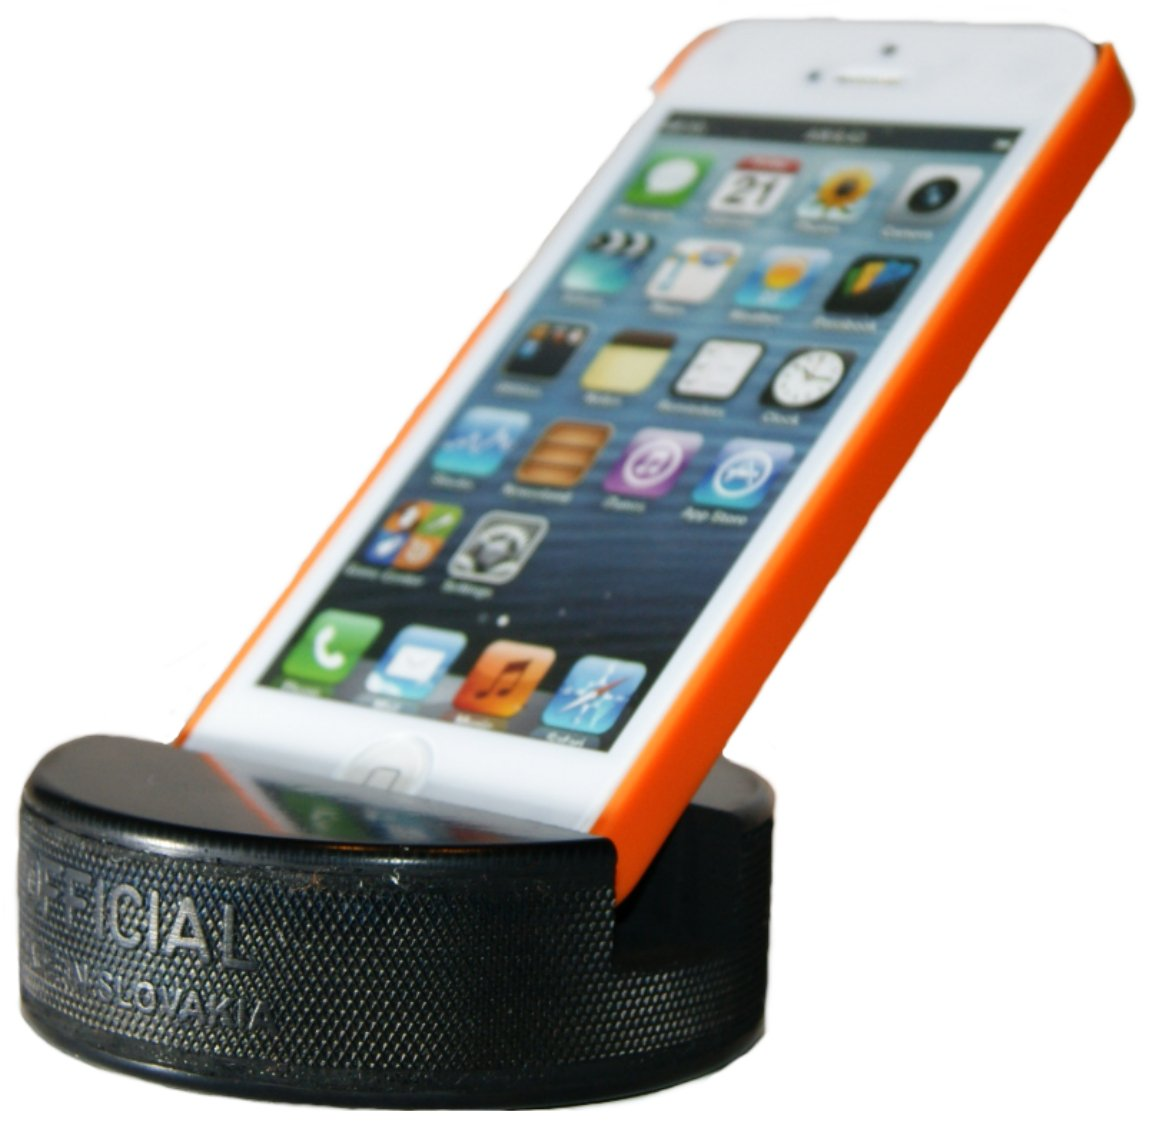 PUCKUPS - Indestructible Hockey Puck Cell Phone Stand - The Best Universal Smartphone/iPhone Xs Xs Max Xr X 8 7 6 / All Samsung Galaxy/Note/Google Pixel/PUCKUP Made From a REAL Hockey Puck